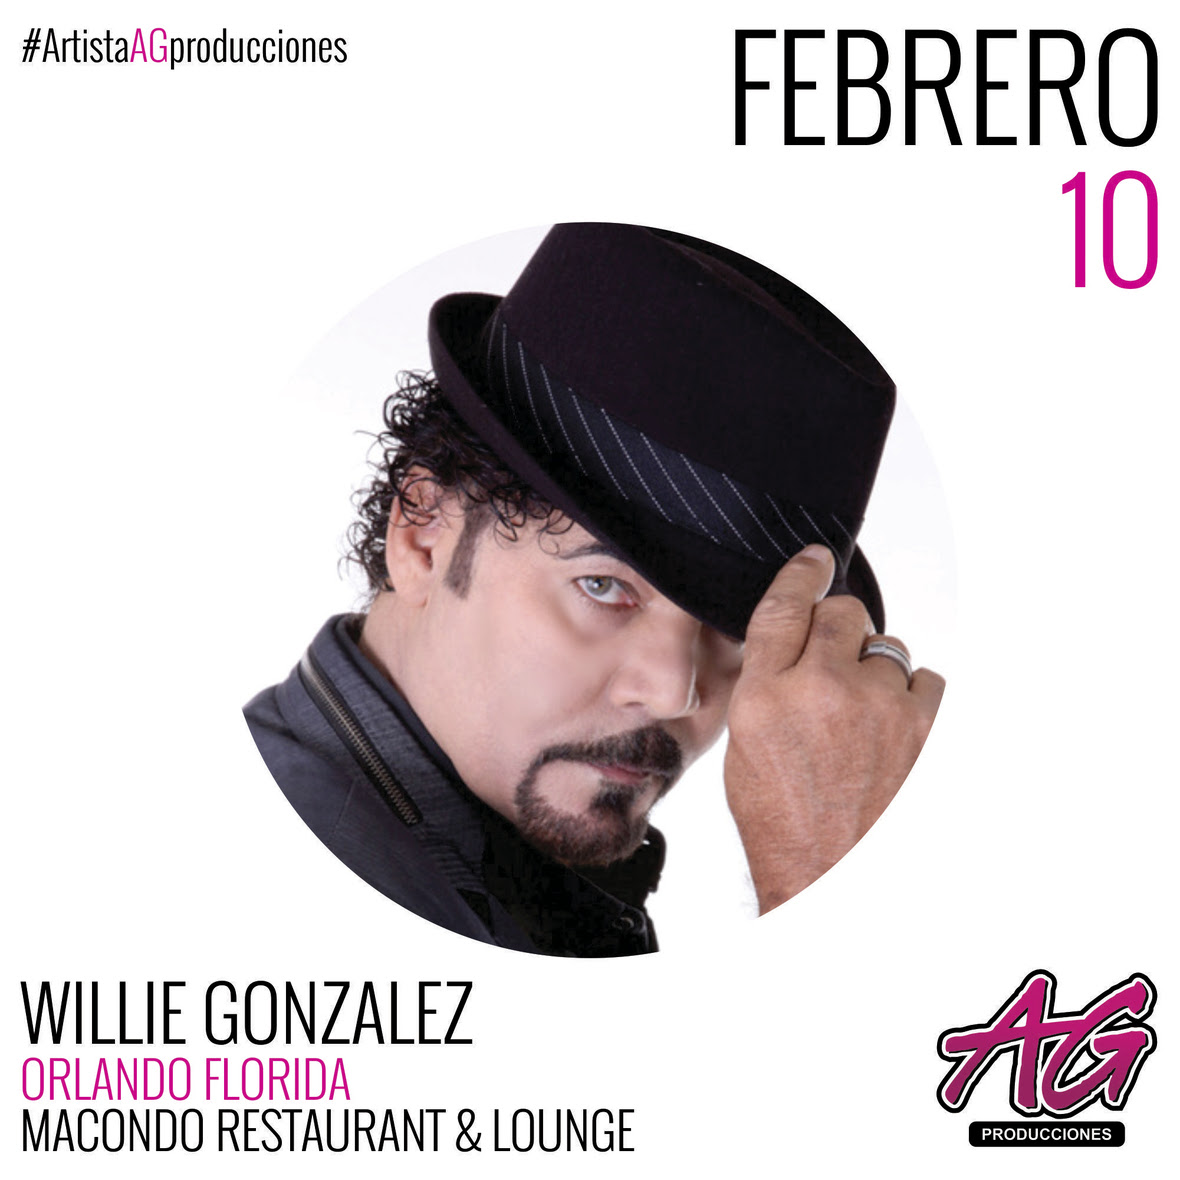 05 AG PRODUCCIONES - WILLIE GONZALEZ FEB 10